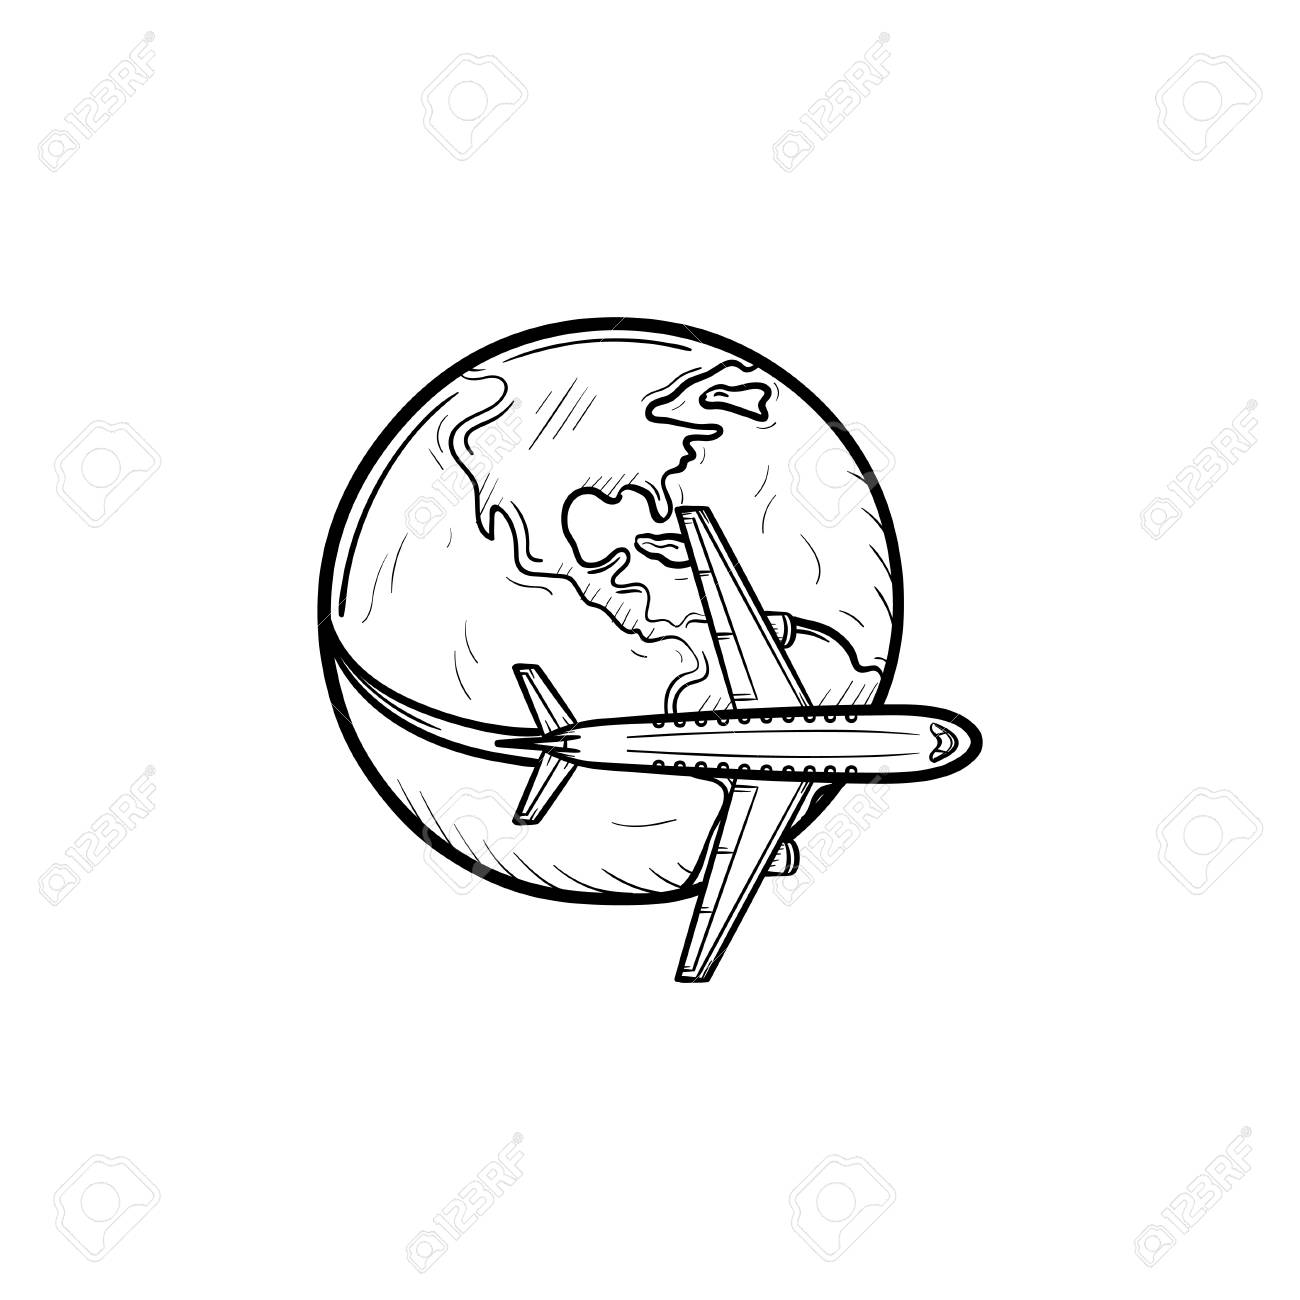 Airplane flying around the world hand drawn outline doodle icon